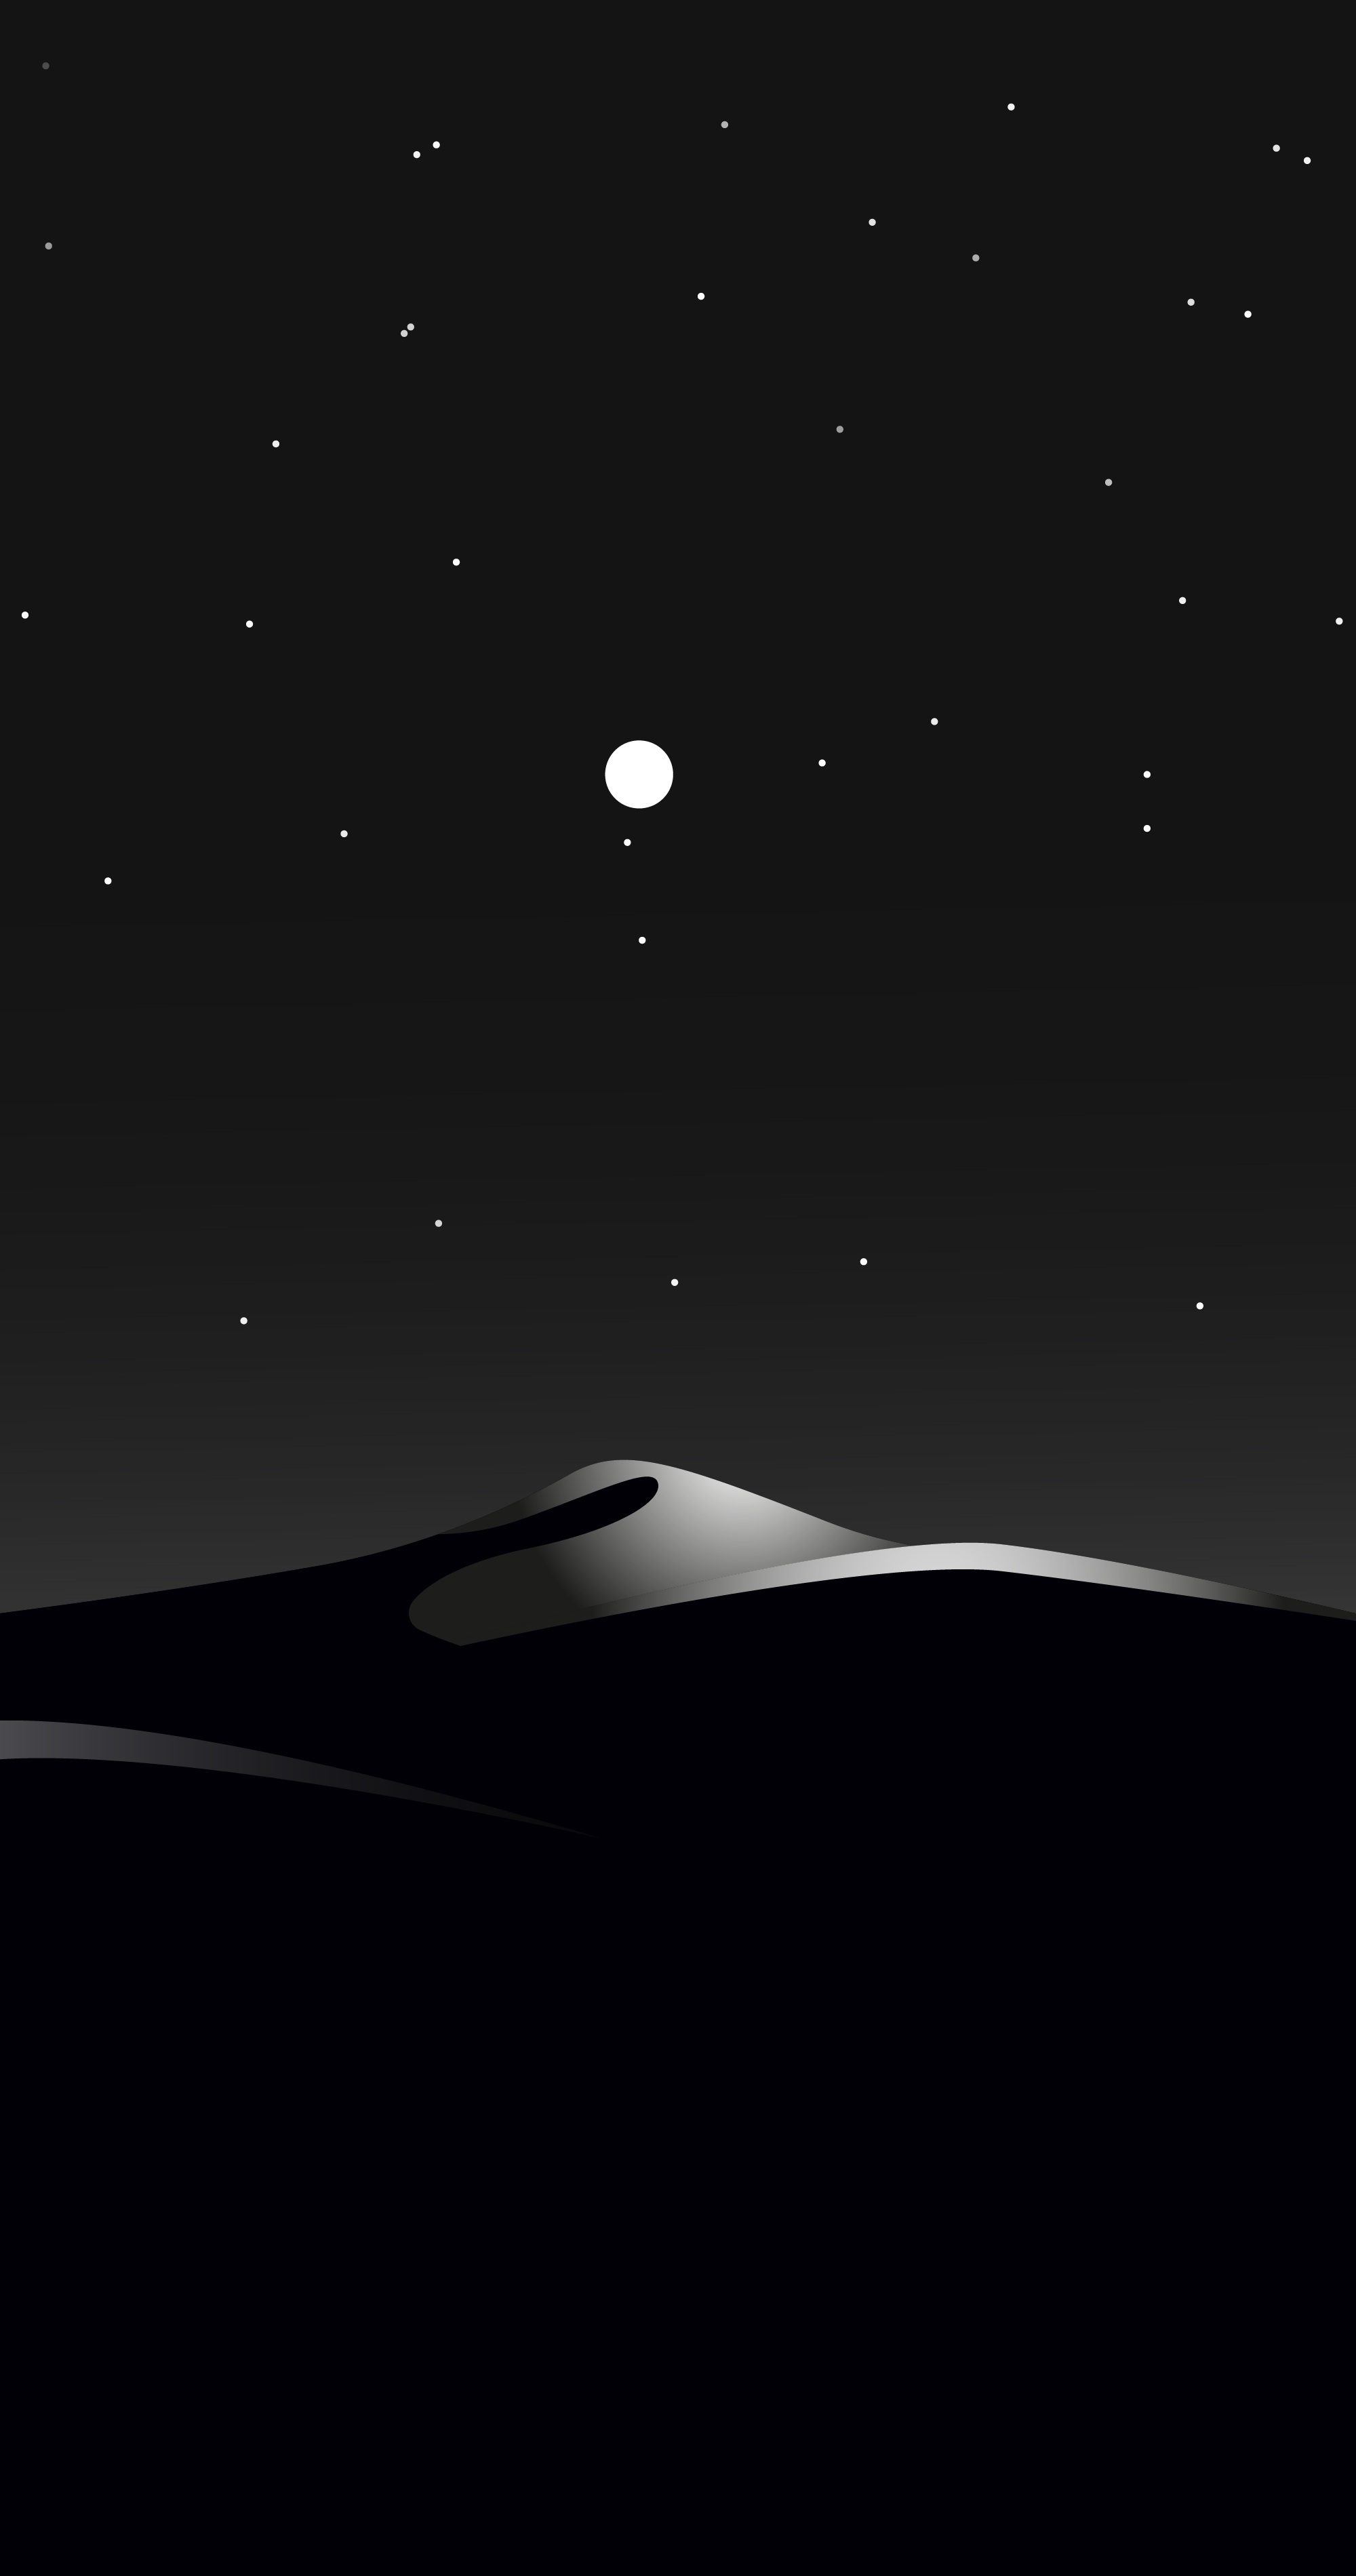 Black Night Stars Winter Mountain Wallpaper Iphone Clean Beauty Peaceful Cal Iphone Wallpaper Mountains Best Iphone Wallpapers Iphone Wallpaper Images